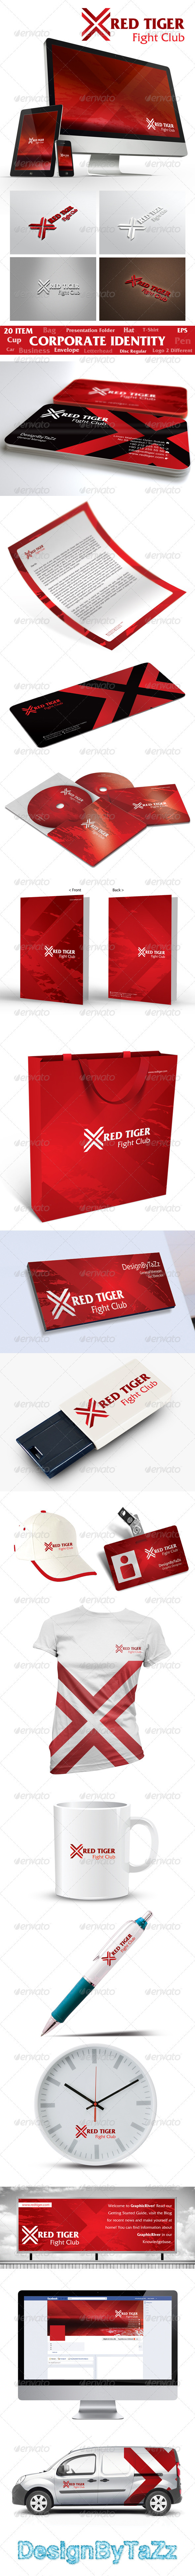 Red Tiger Corporate Identity Package - Stationery Print Templates